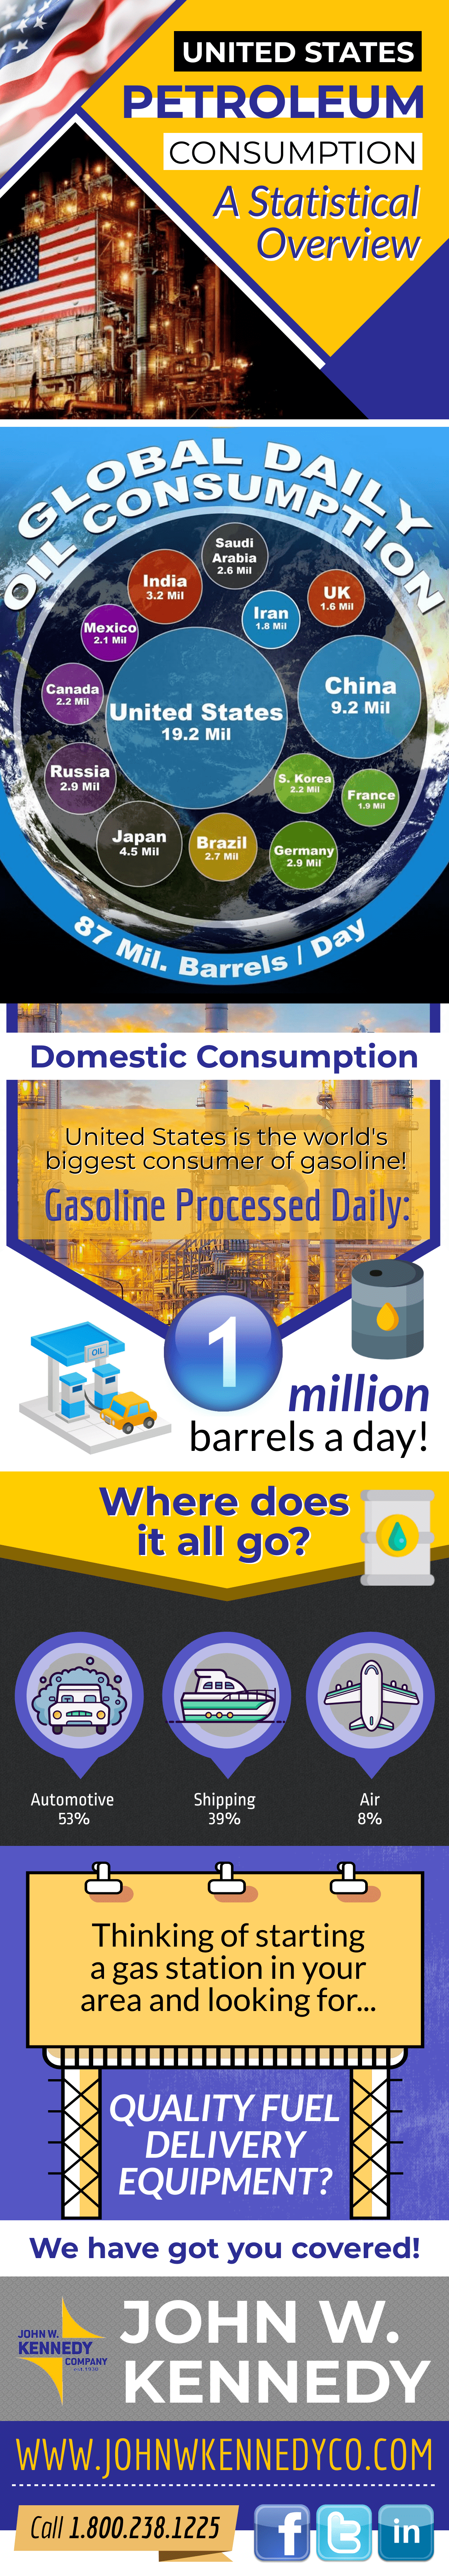 United-States-Petroleum-Consumption-Overview